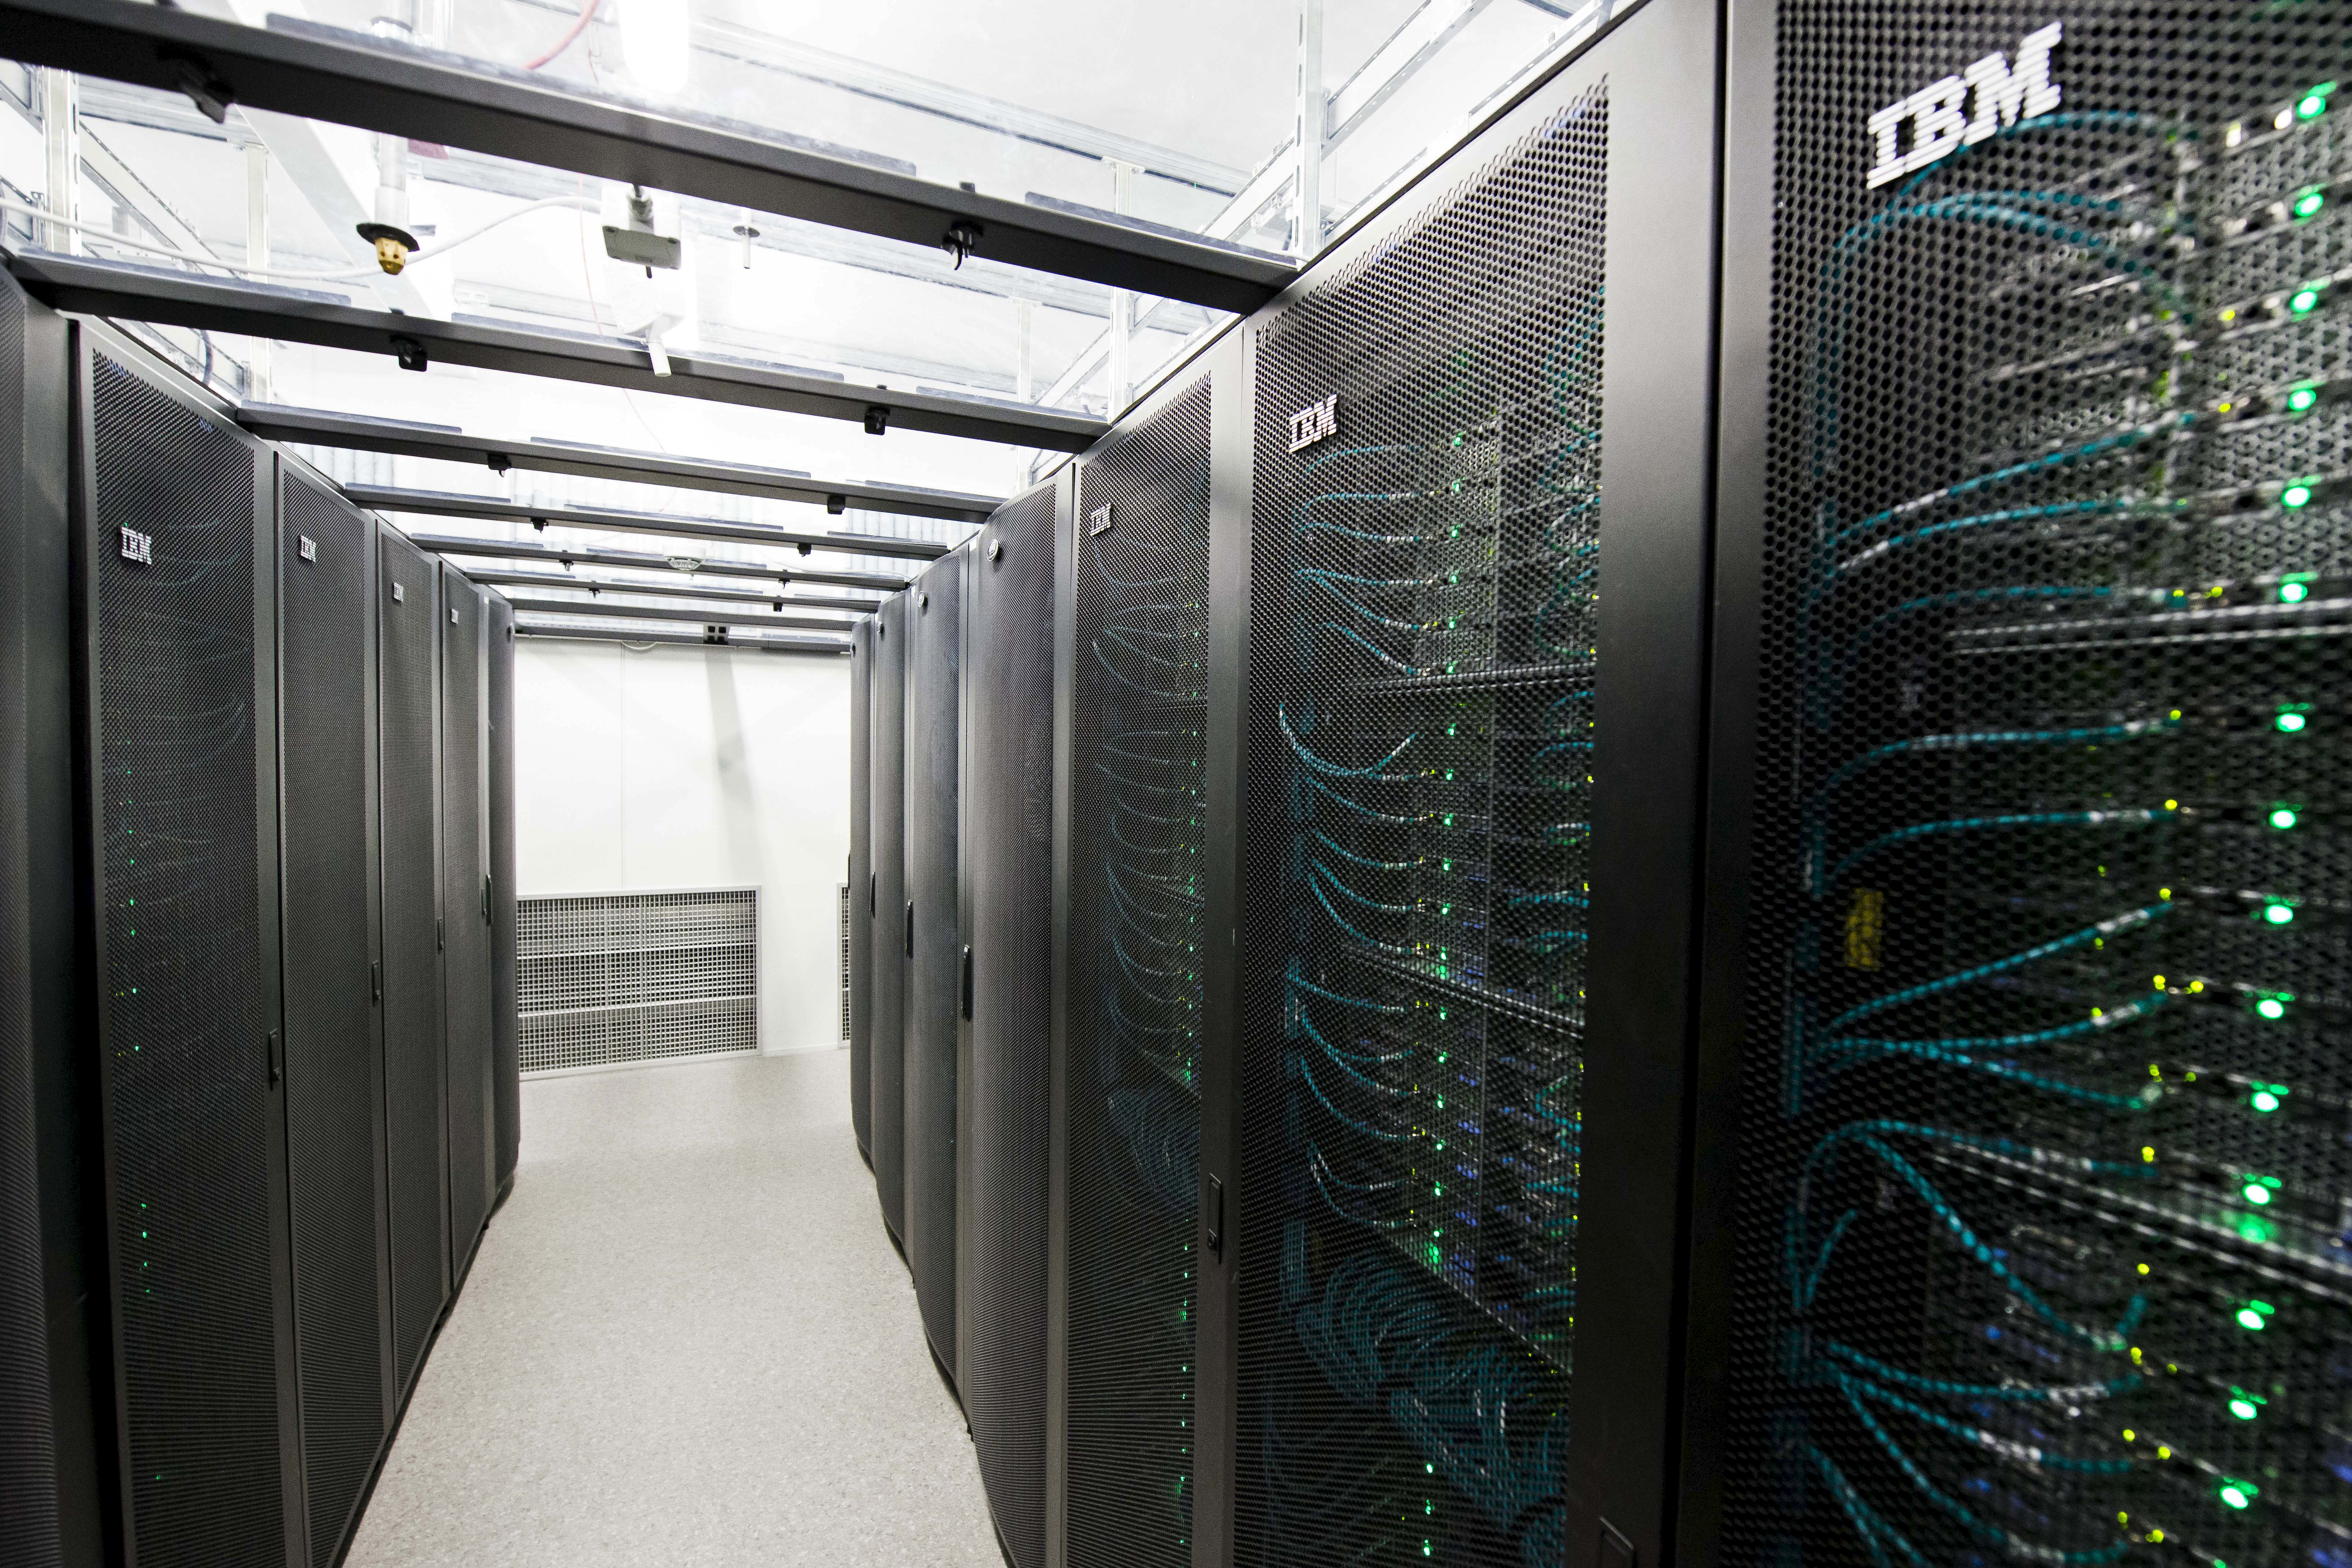 Servers for data storage are seen at Advania's Thor Data Center in Hafnarfjordur, Iceland August 7, 2015.